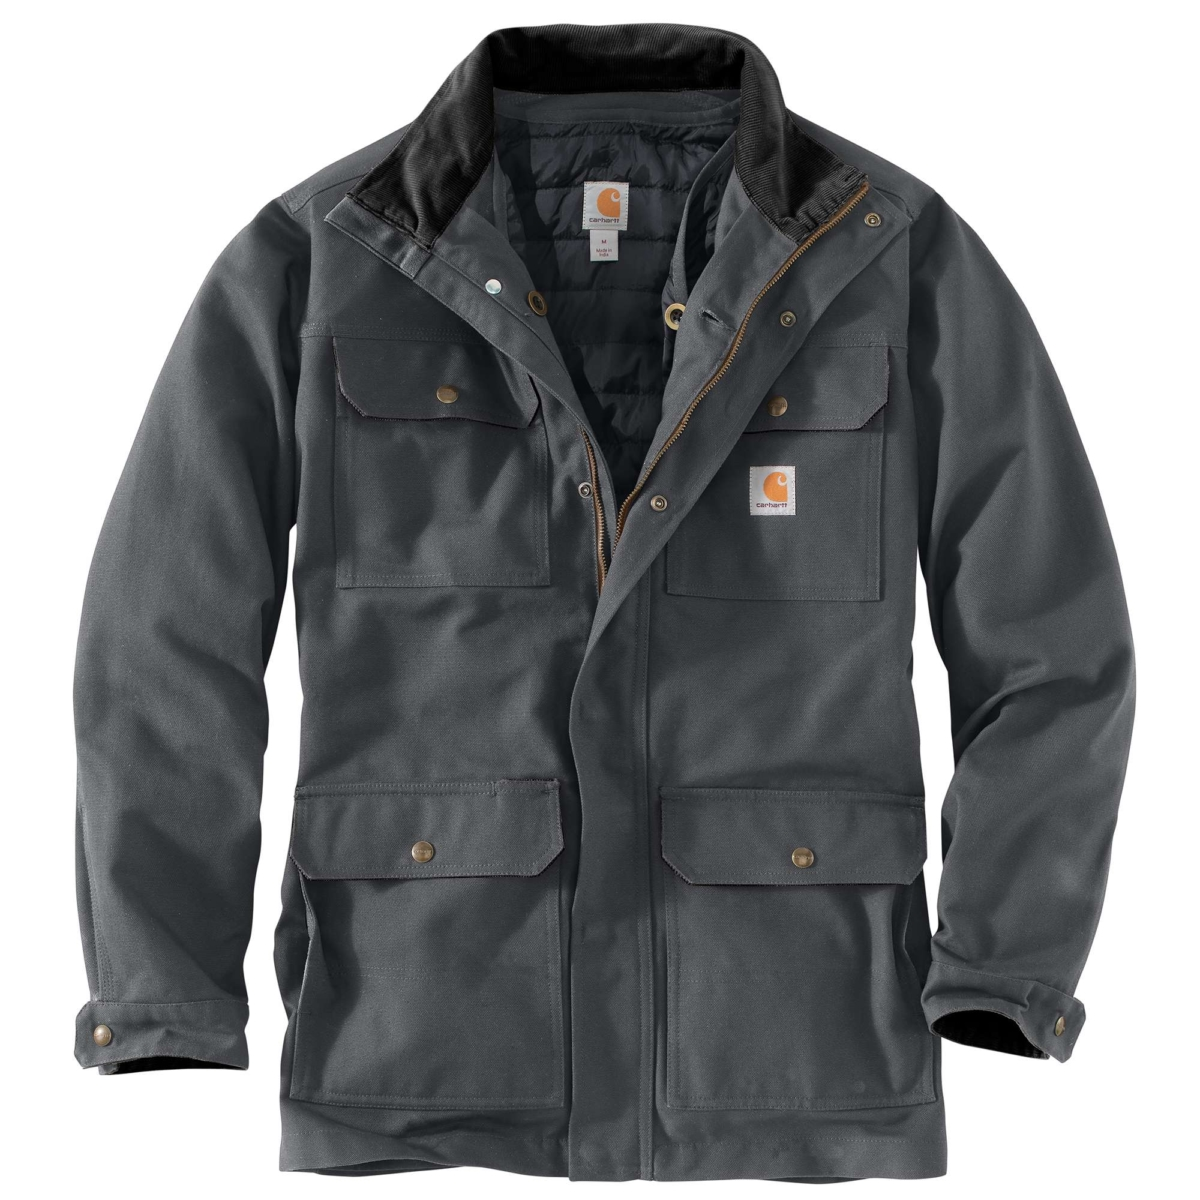 Carhartt Field Coat Shadow USA - GOOFASH - Mens COATS